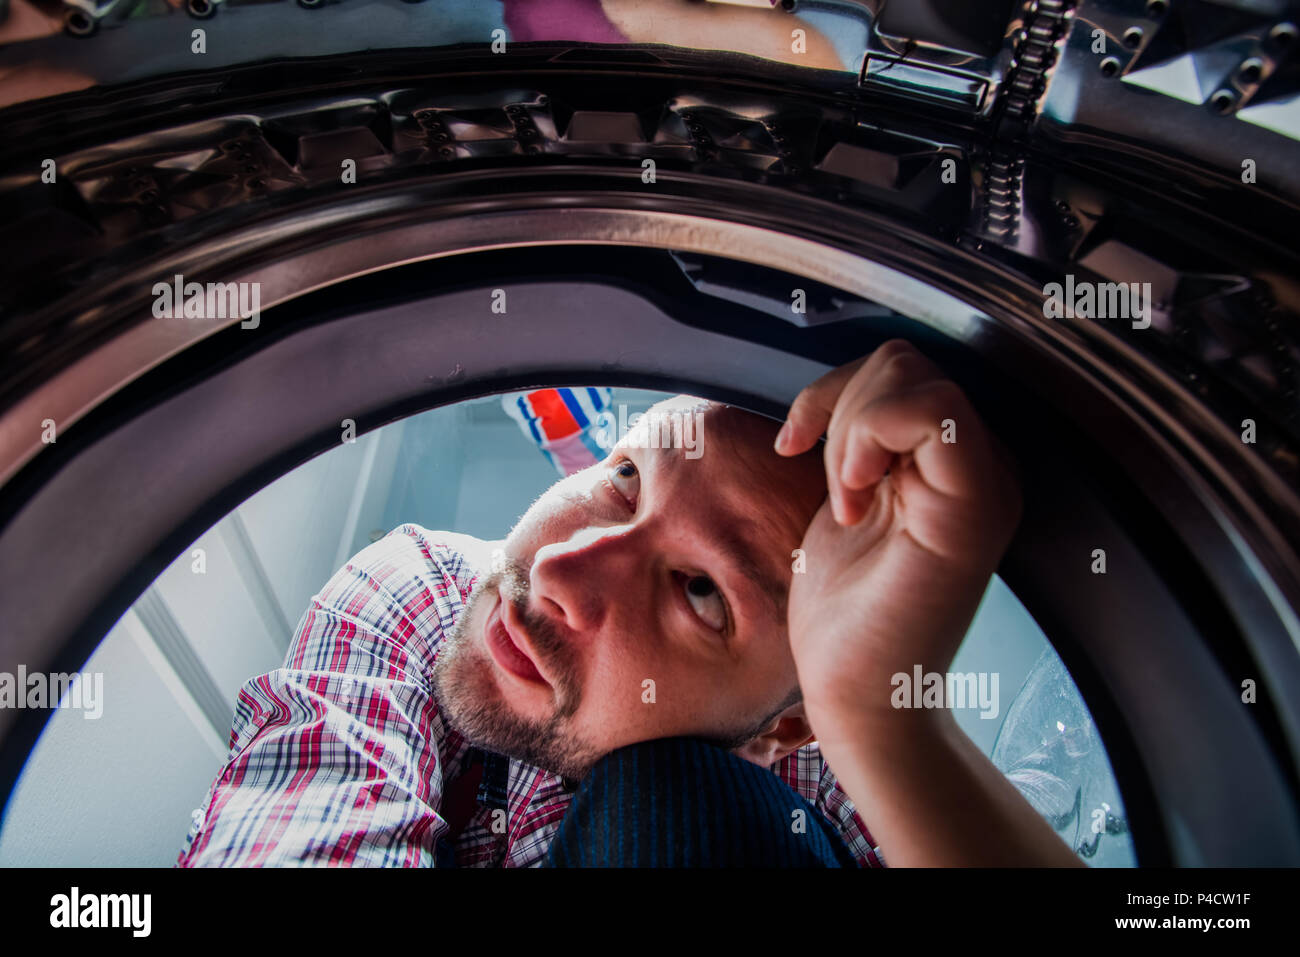 Repair man fixing the washing machine in the bathroom, view from inside the machine - Stock Image